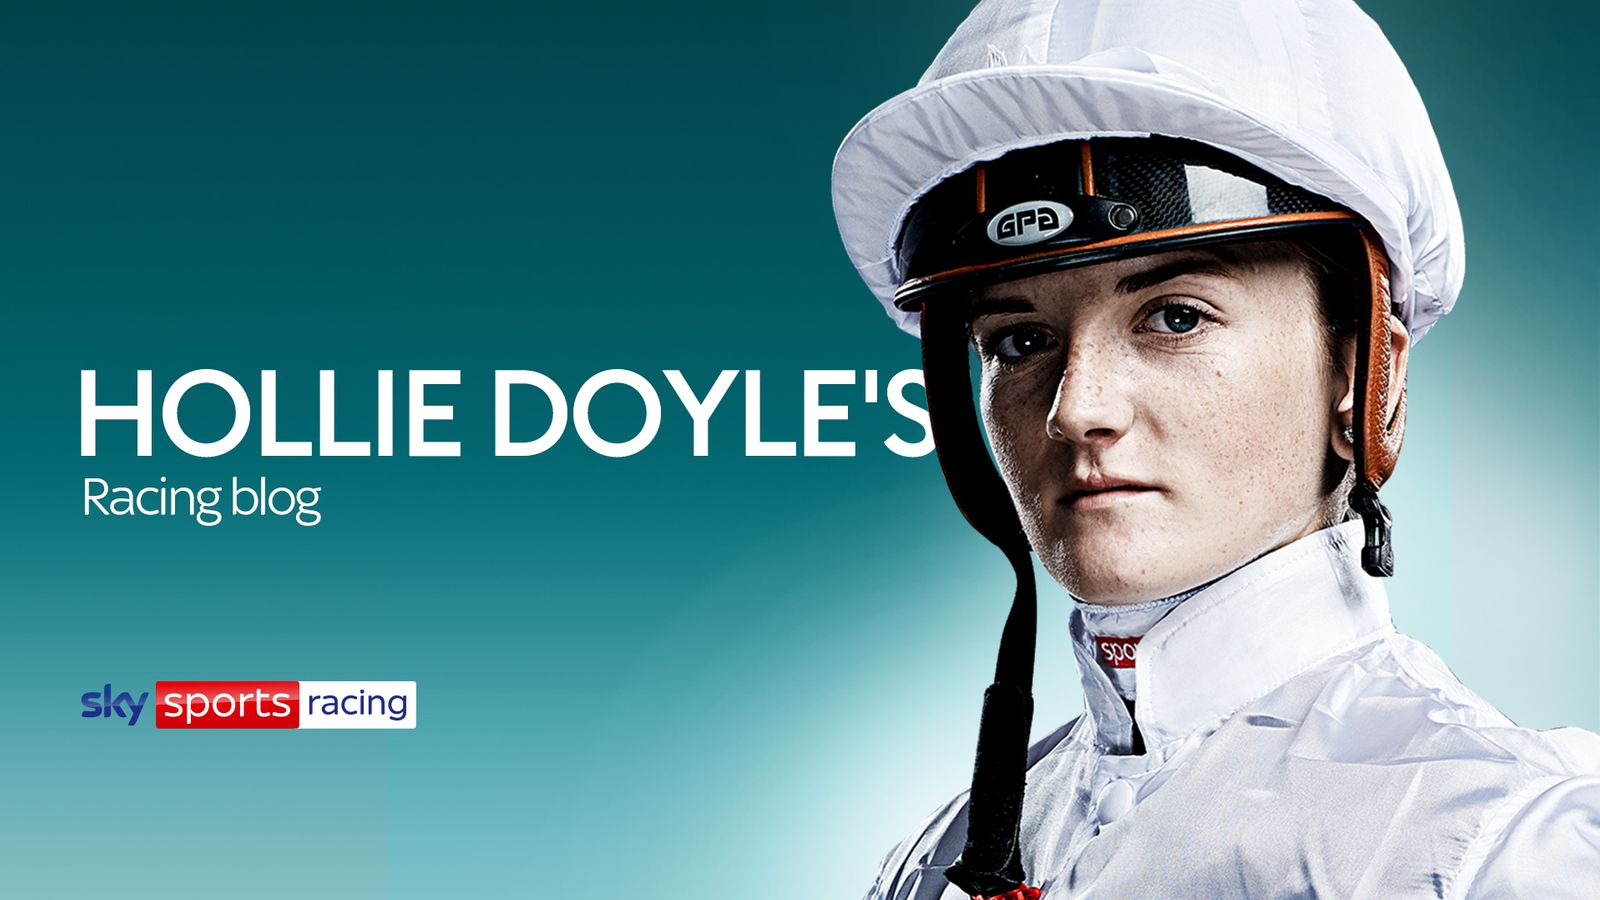 Hollie Doyle blog: Sky Sports Racing ambassador aiming to break new record for winners in a year at Doncaster